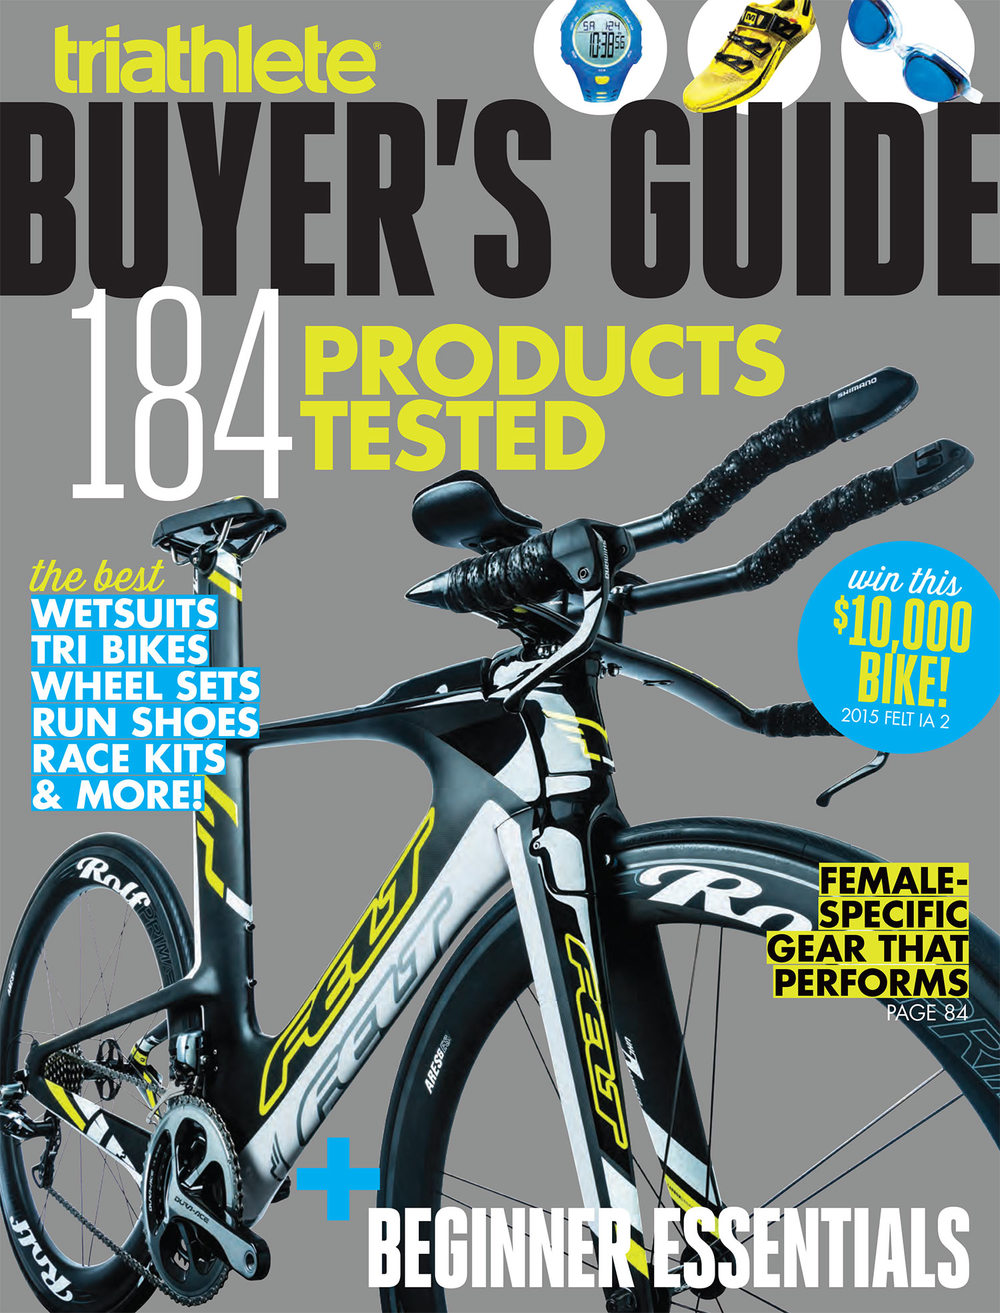 Ares6 ES on the 2015 Triathlete Magazine Buyers Guide